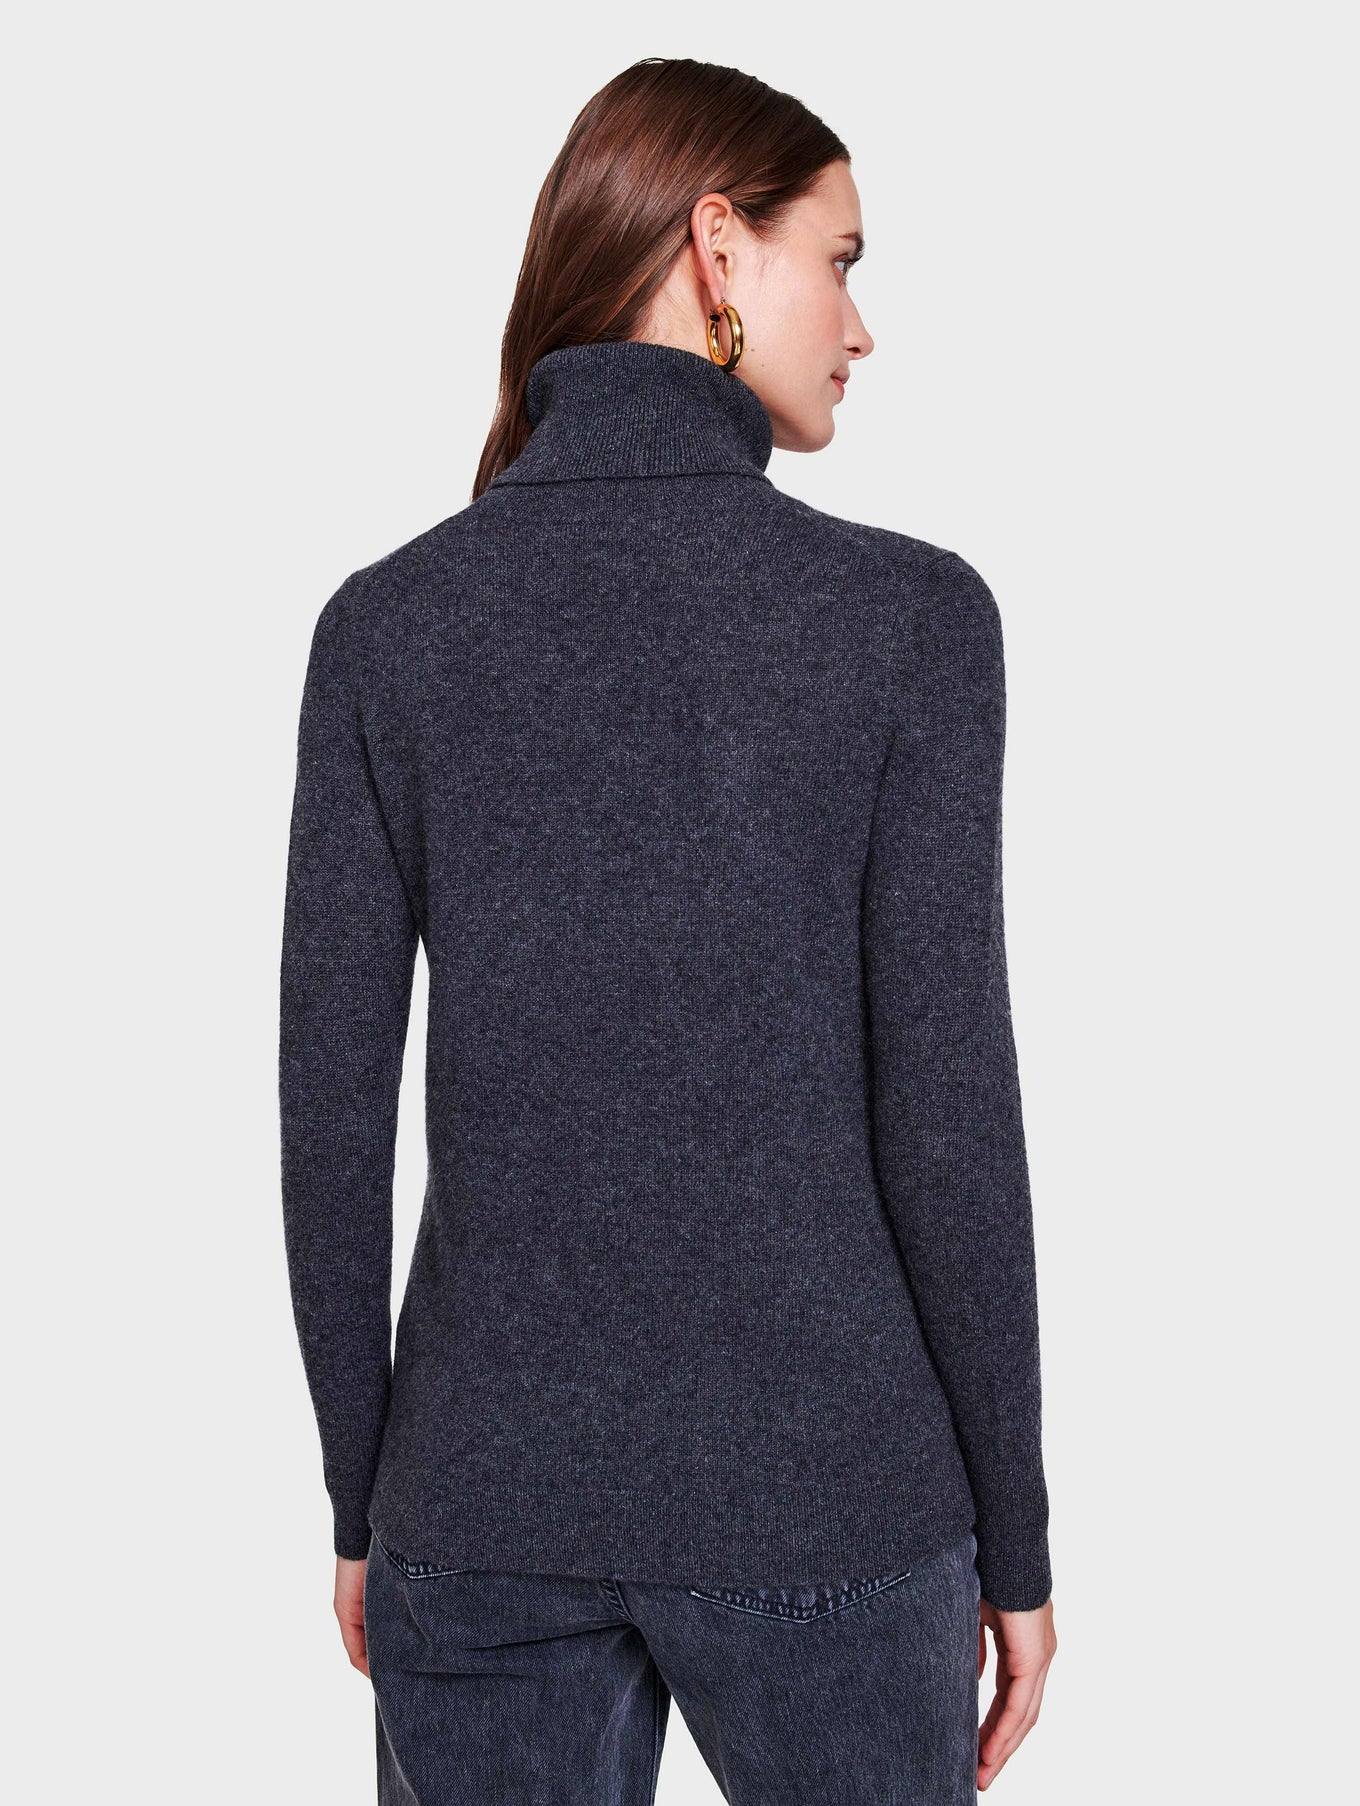 Essential Cashmere Turtleneck